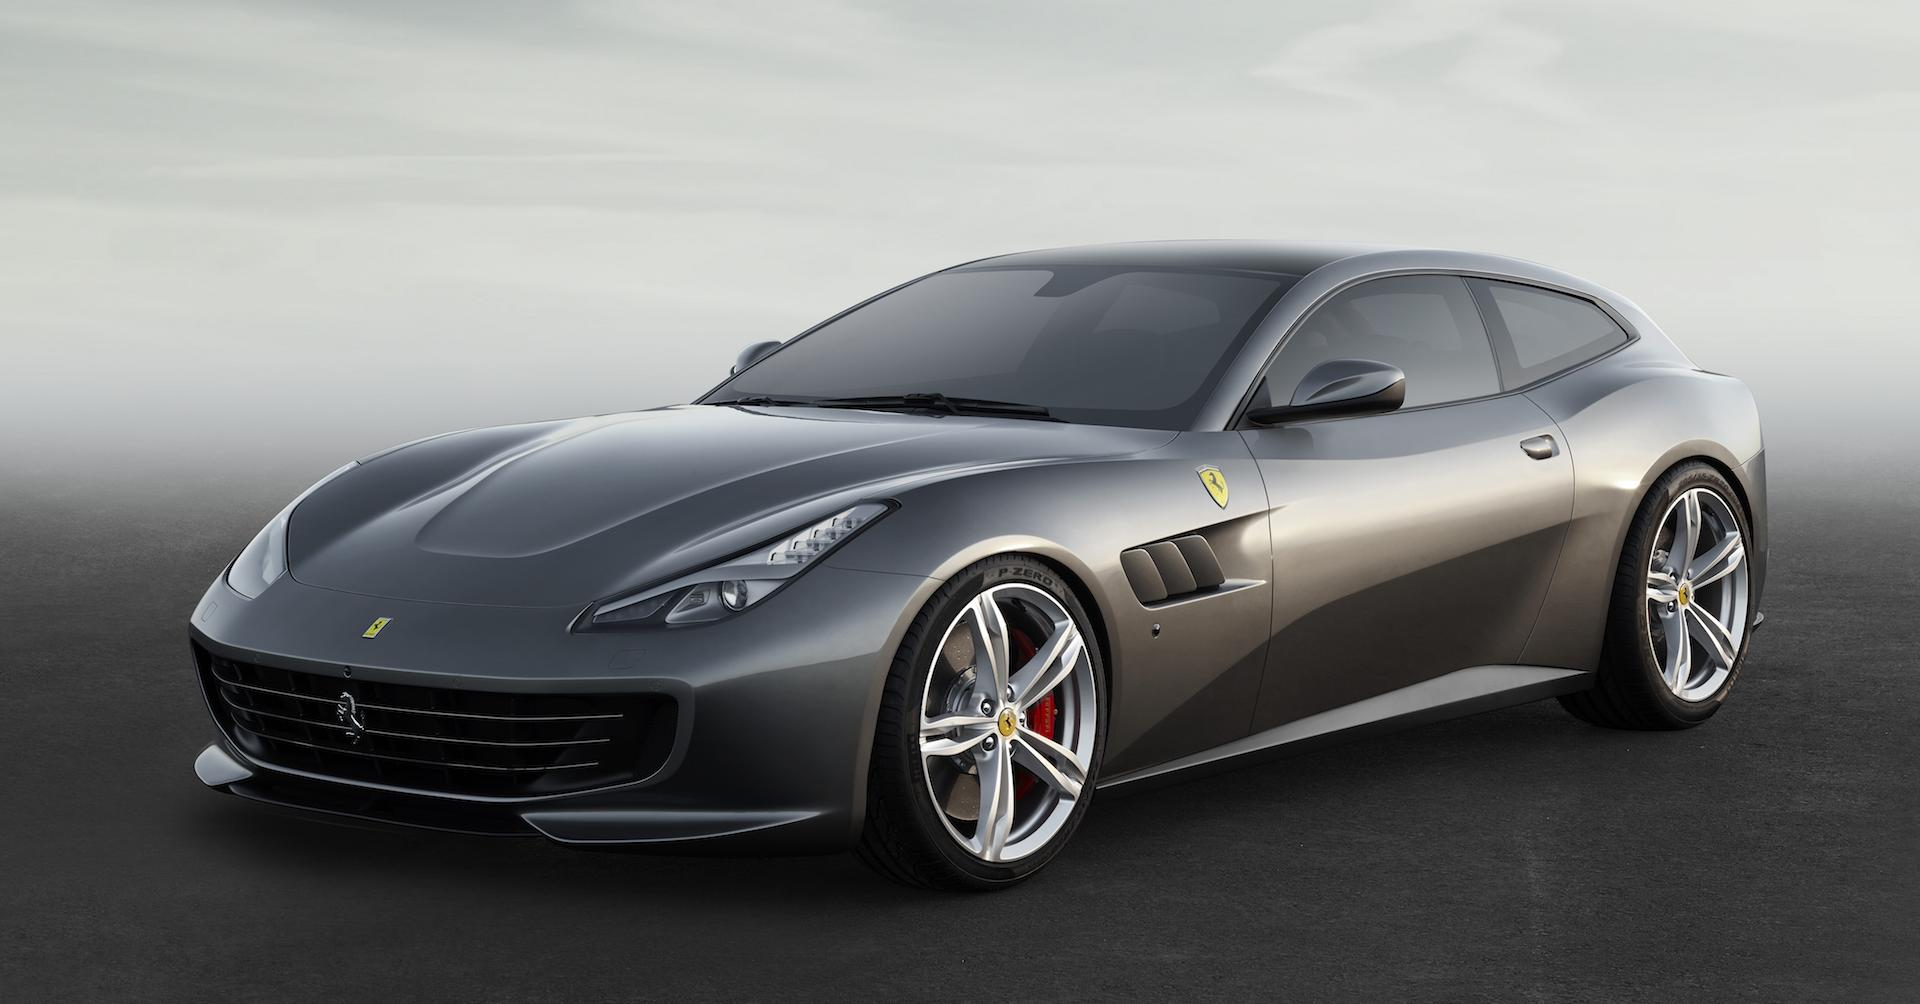 Ferrari's race car for the snow just got faster and fancier